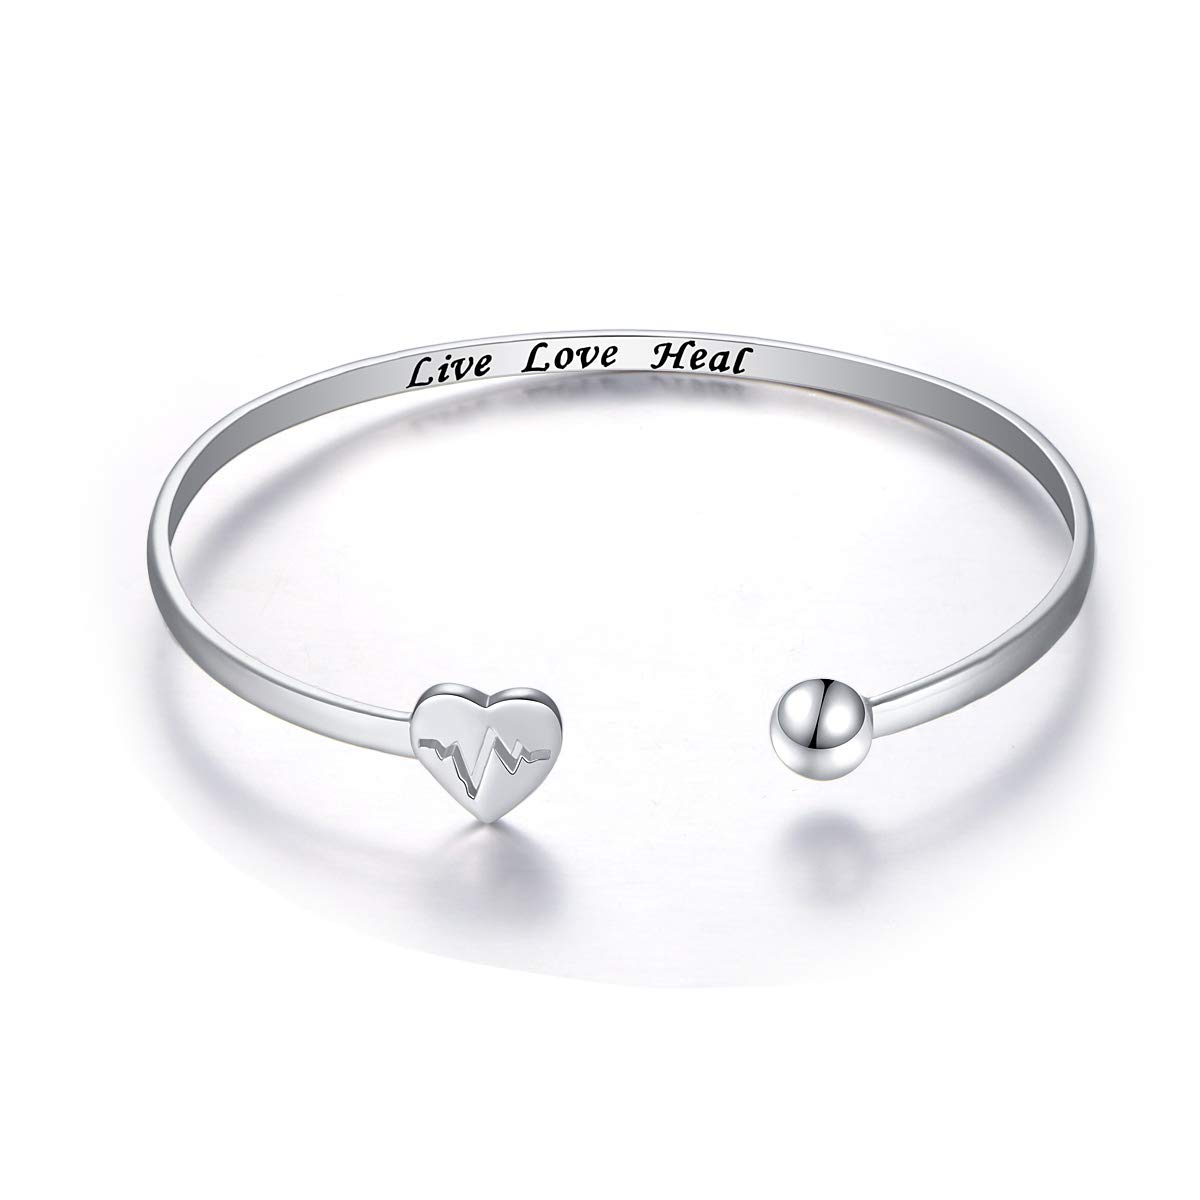 S925 Sterling Silver Live Love Heal EKG Heartbeat Adjustable Open Cuff Heart Bangle Bracelet for Nurse Doctor Medical Student Graduation Gift by Yearace